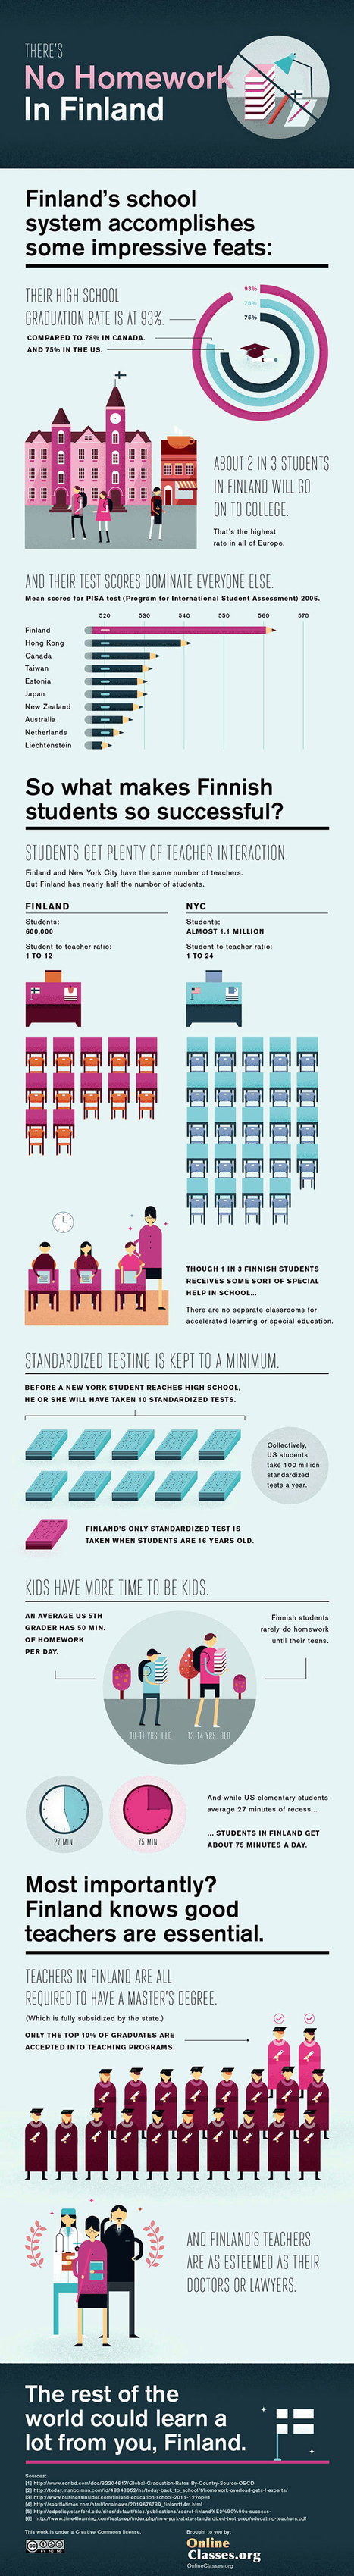 Finland's School System - Infographic | Ope IT | Scoop.it